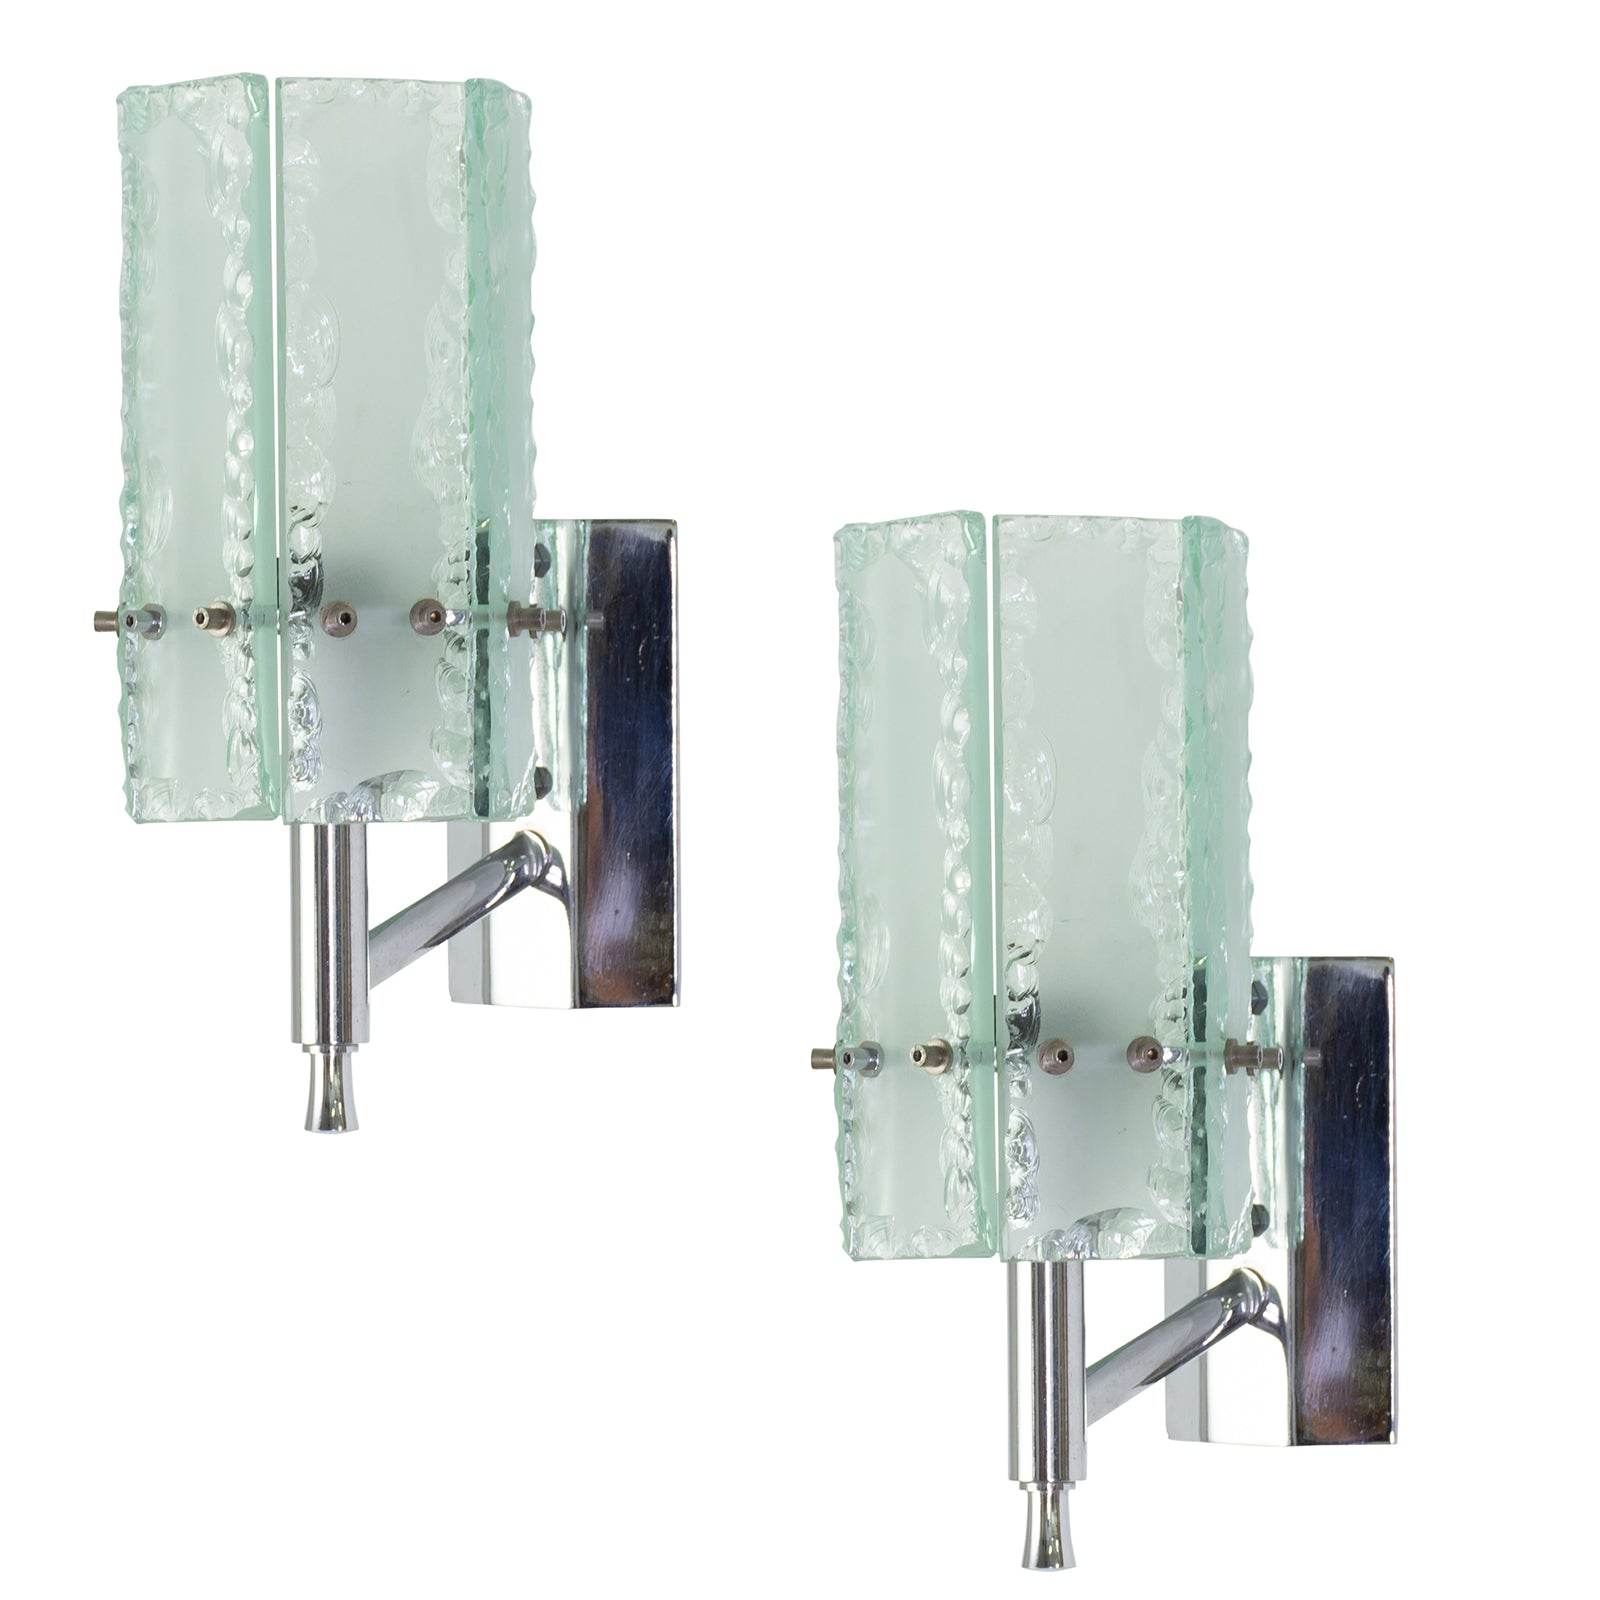 Pair of Italian Chrome and Glass Wall Sconces attributed to Fontarna Arte